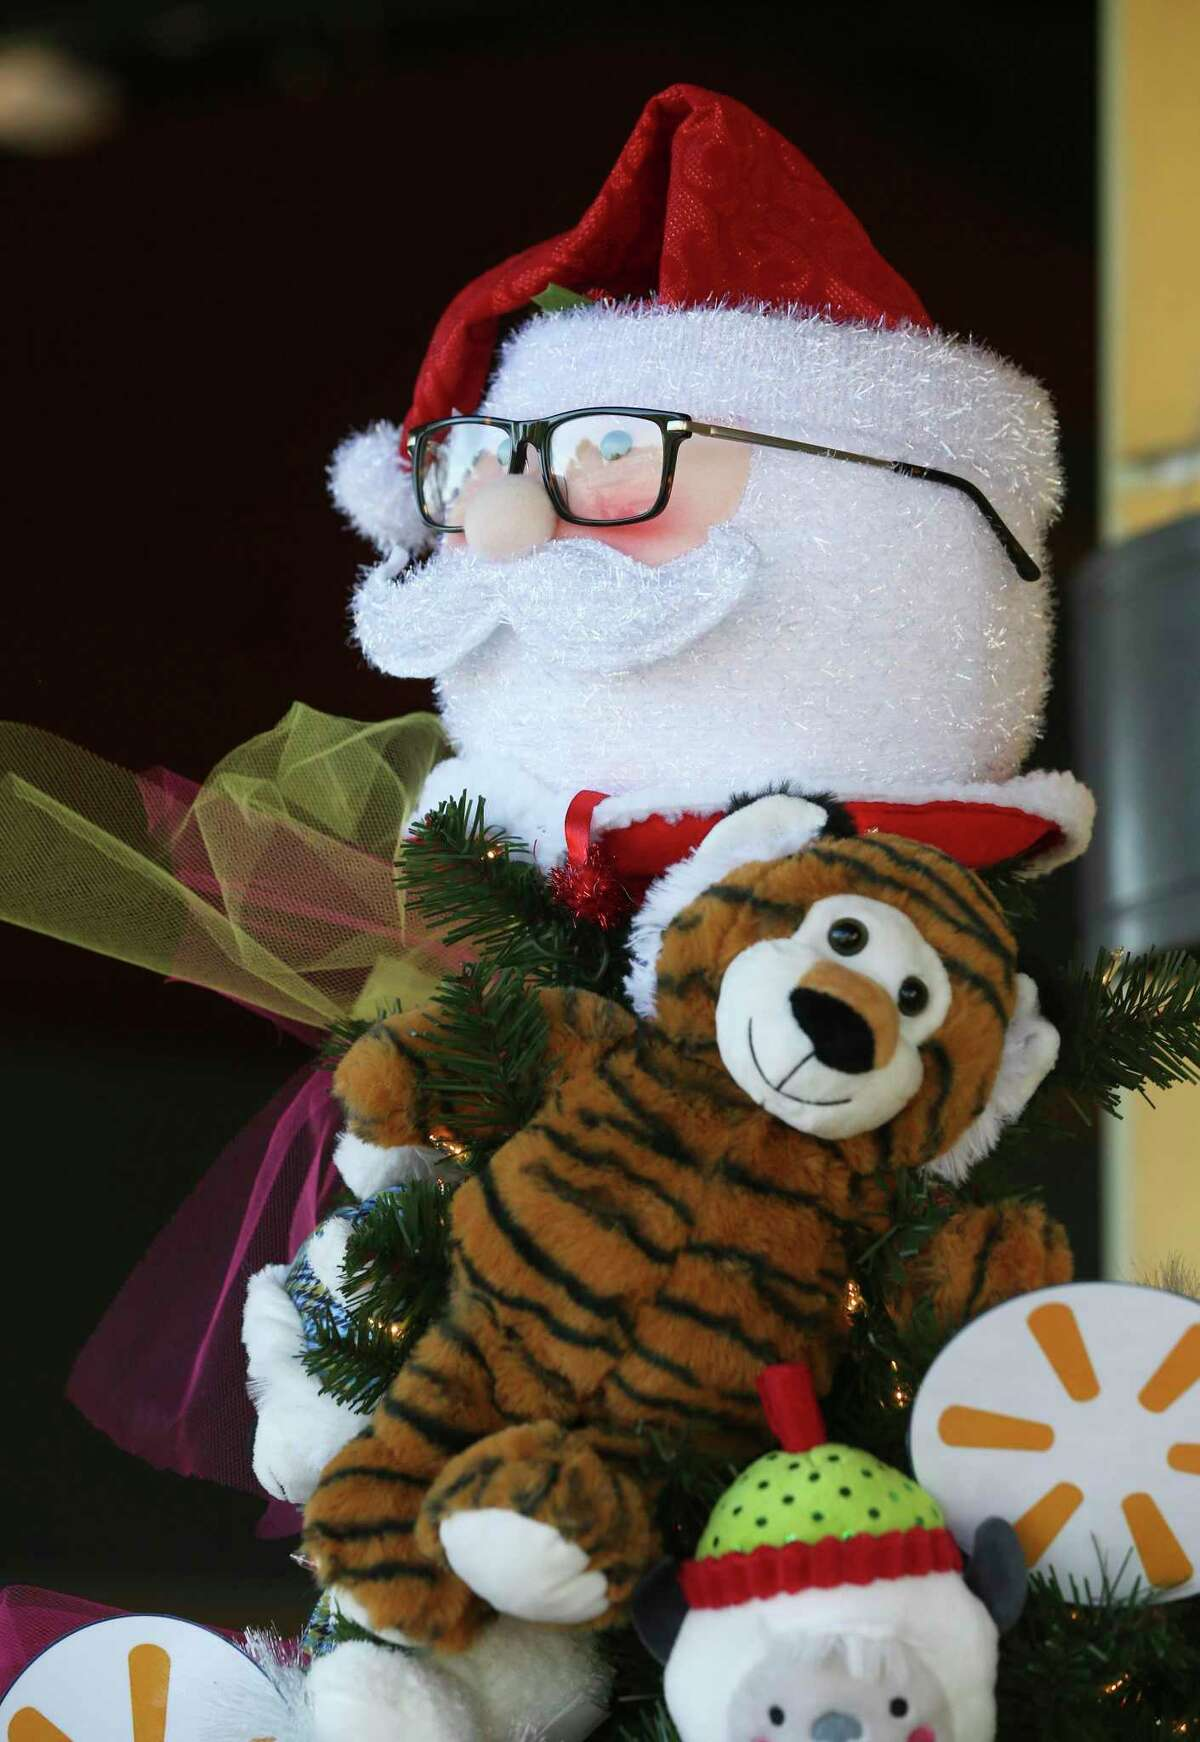 A Santa face tops the tree as local businesses decorate Christmas trees at the Children's Shelter campus on Dec. 3, 2019.